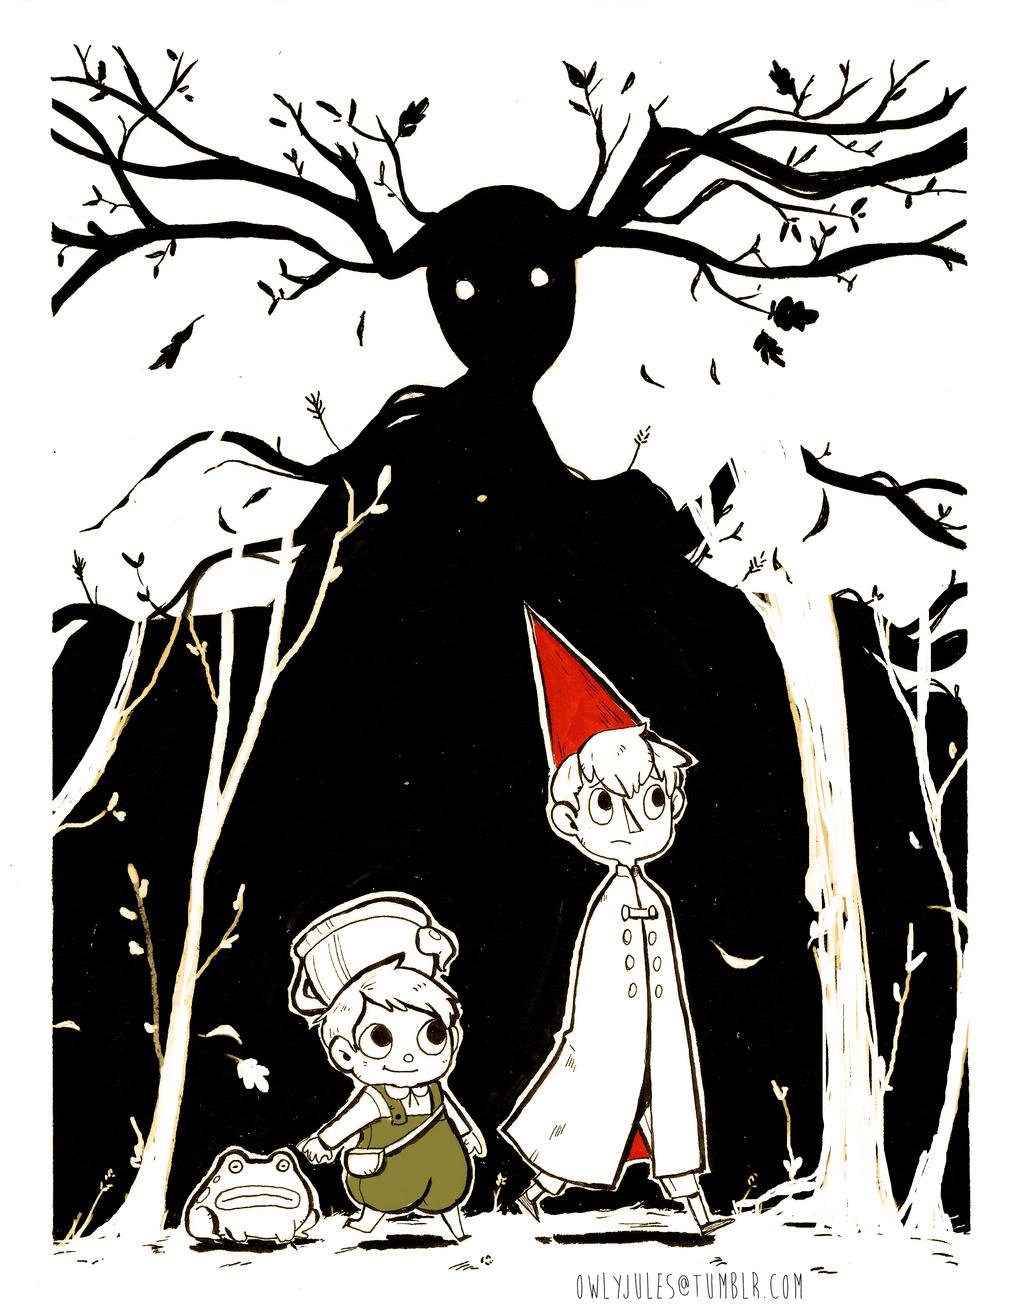 Over The Garden Wall By Owlyjules On Deviantart